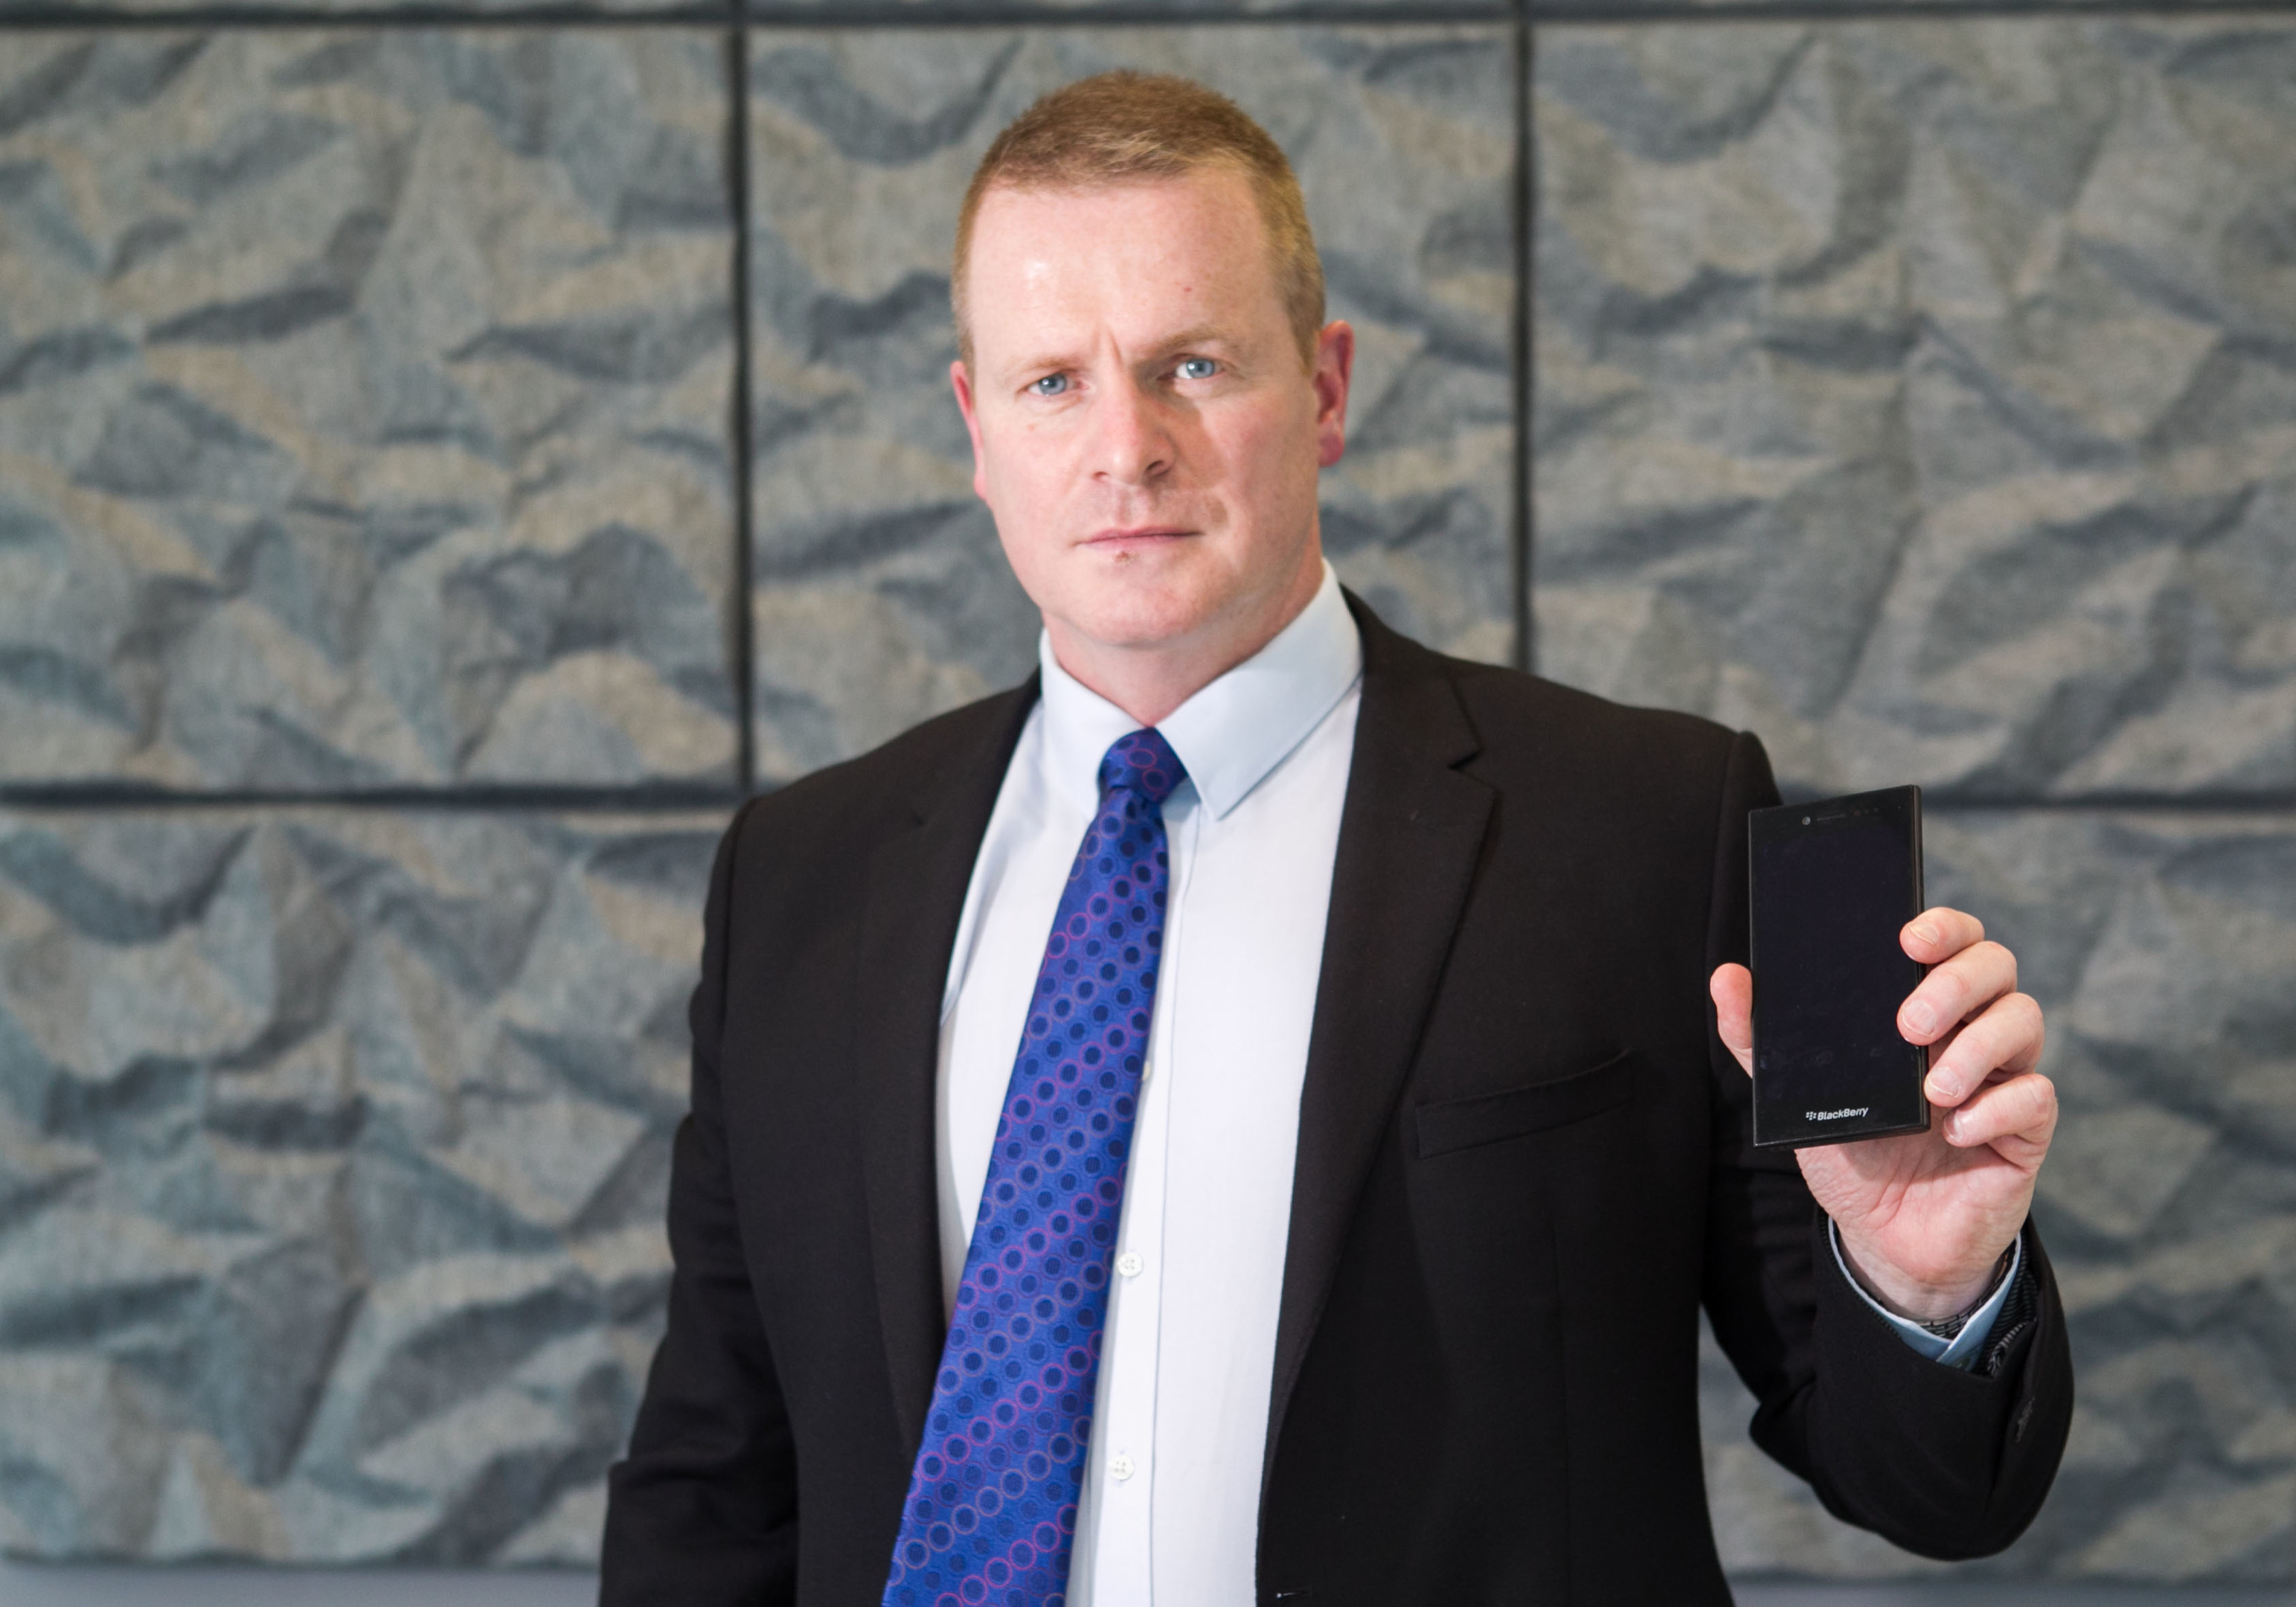 Chief Inspector Scott Tees of Police Scotland talks about mobile phone security